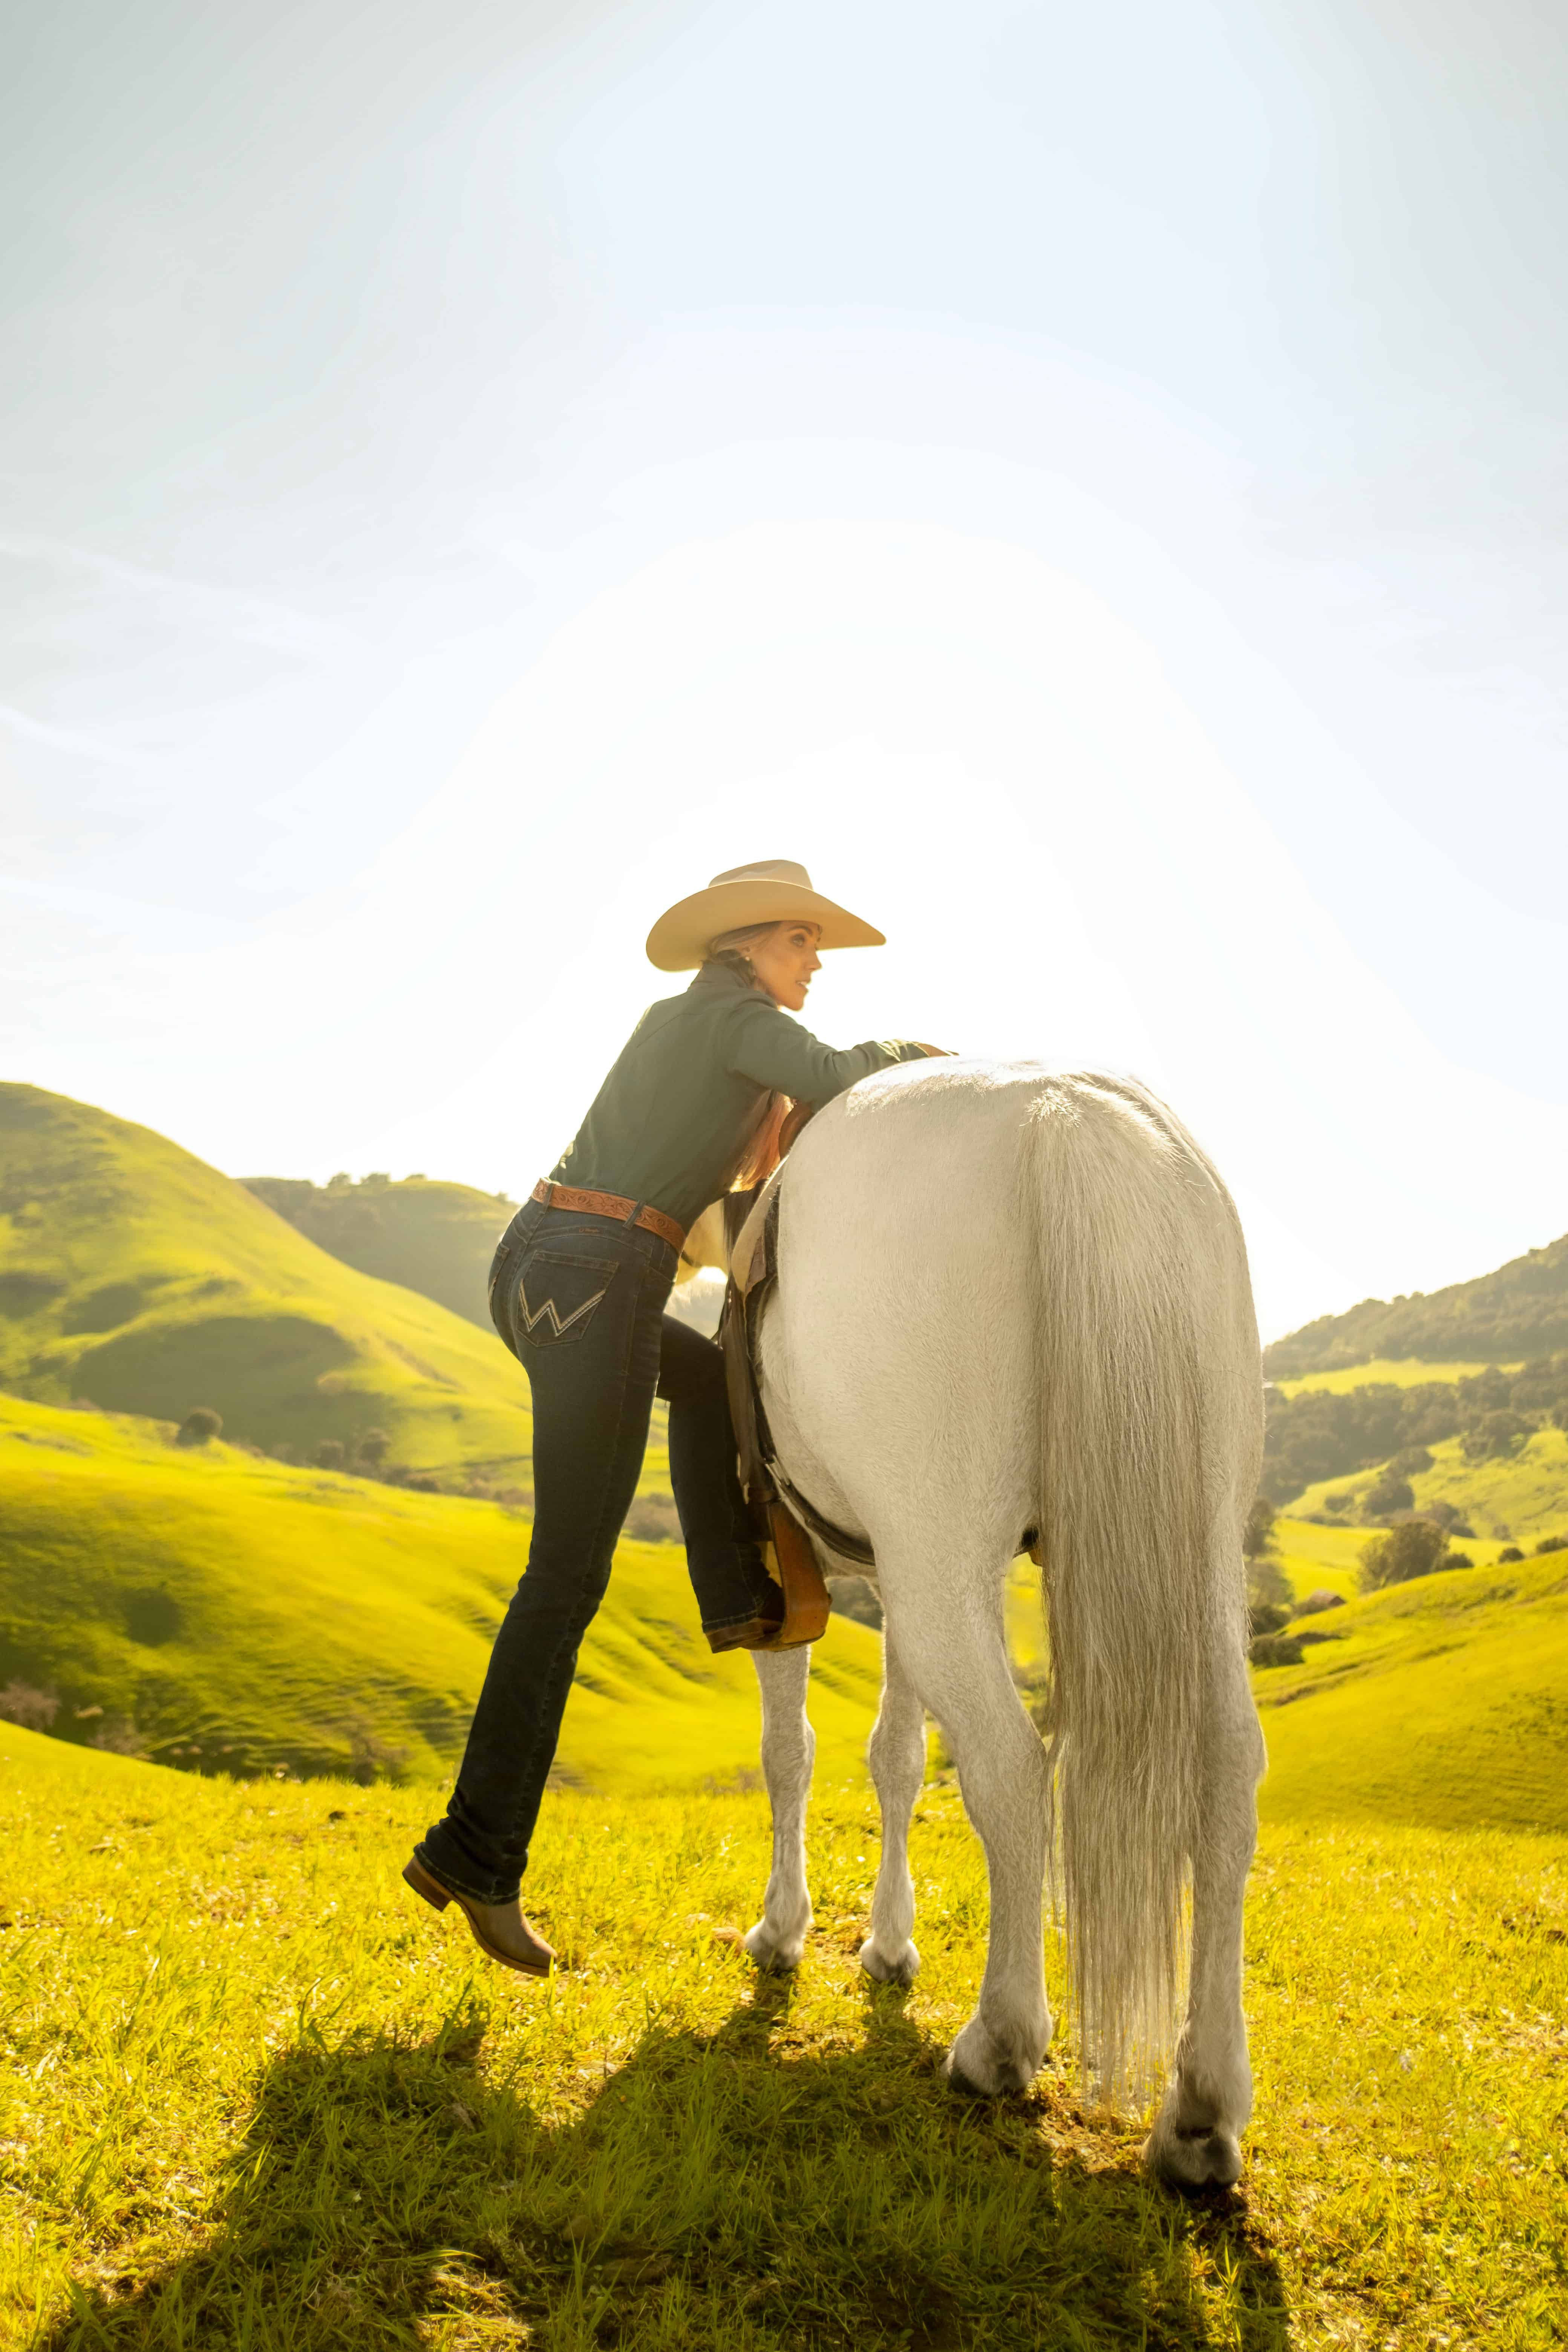 wrangler riding jean is perfect for functional cowgirl activities with a horse